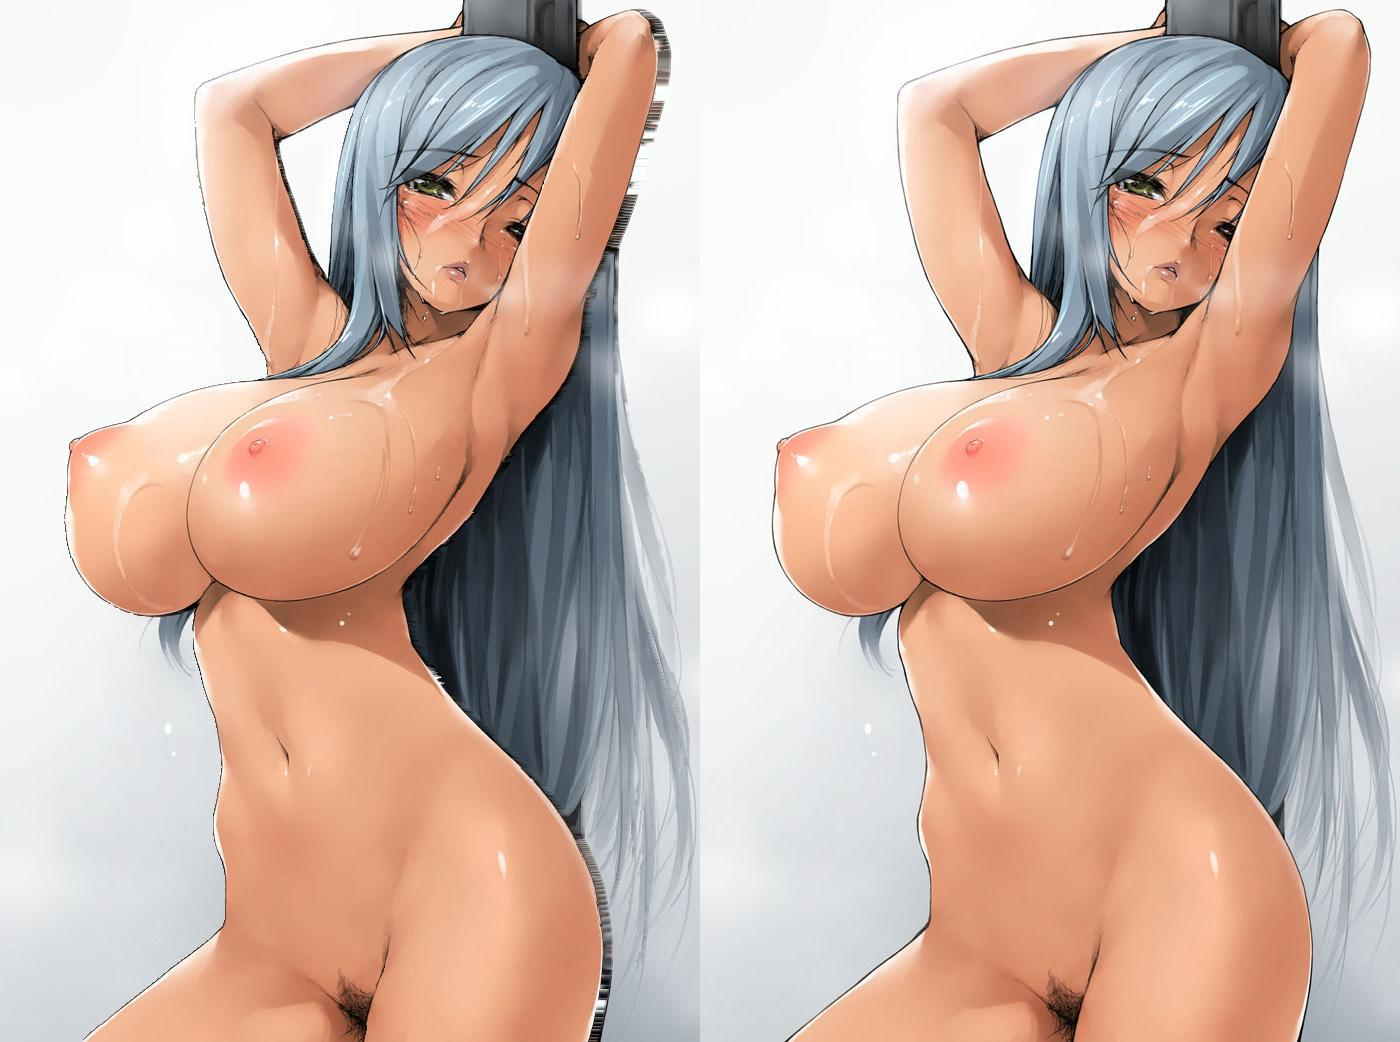 Nude photos animated 3d3d hentai video download anime doll